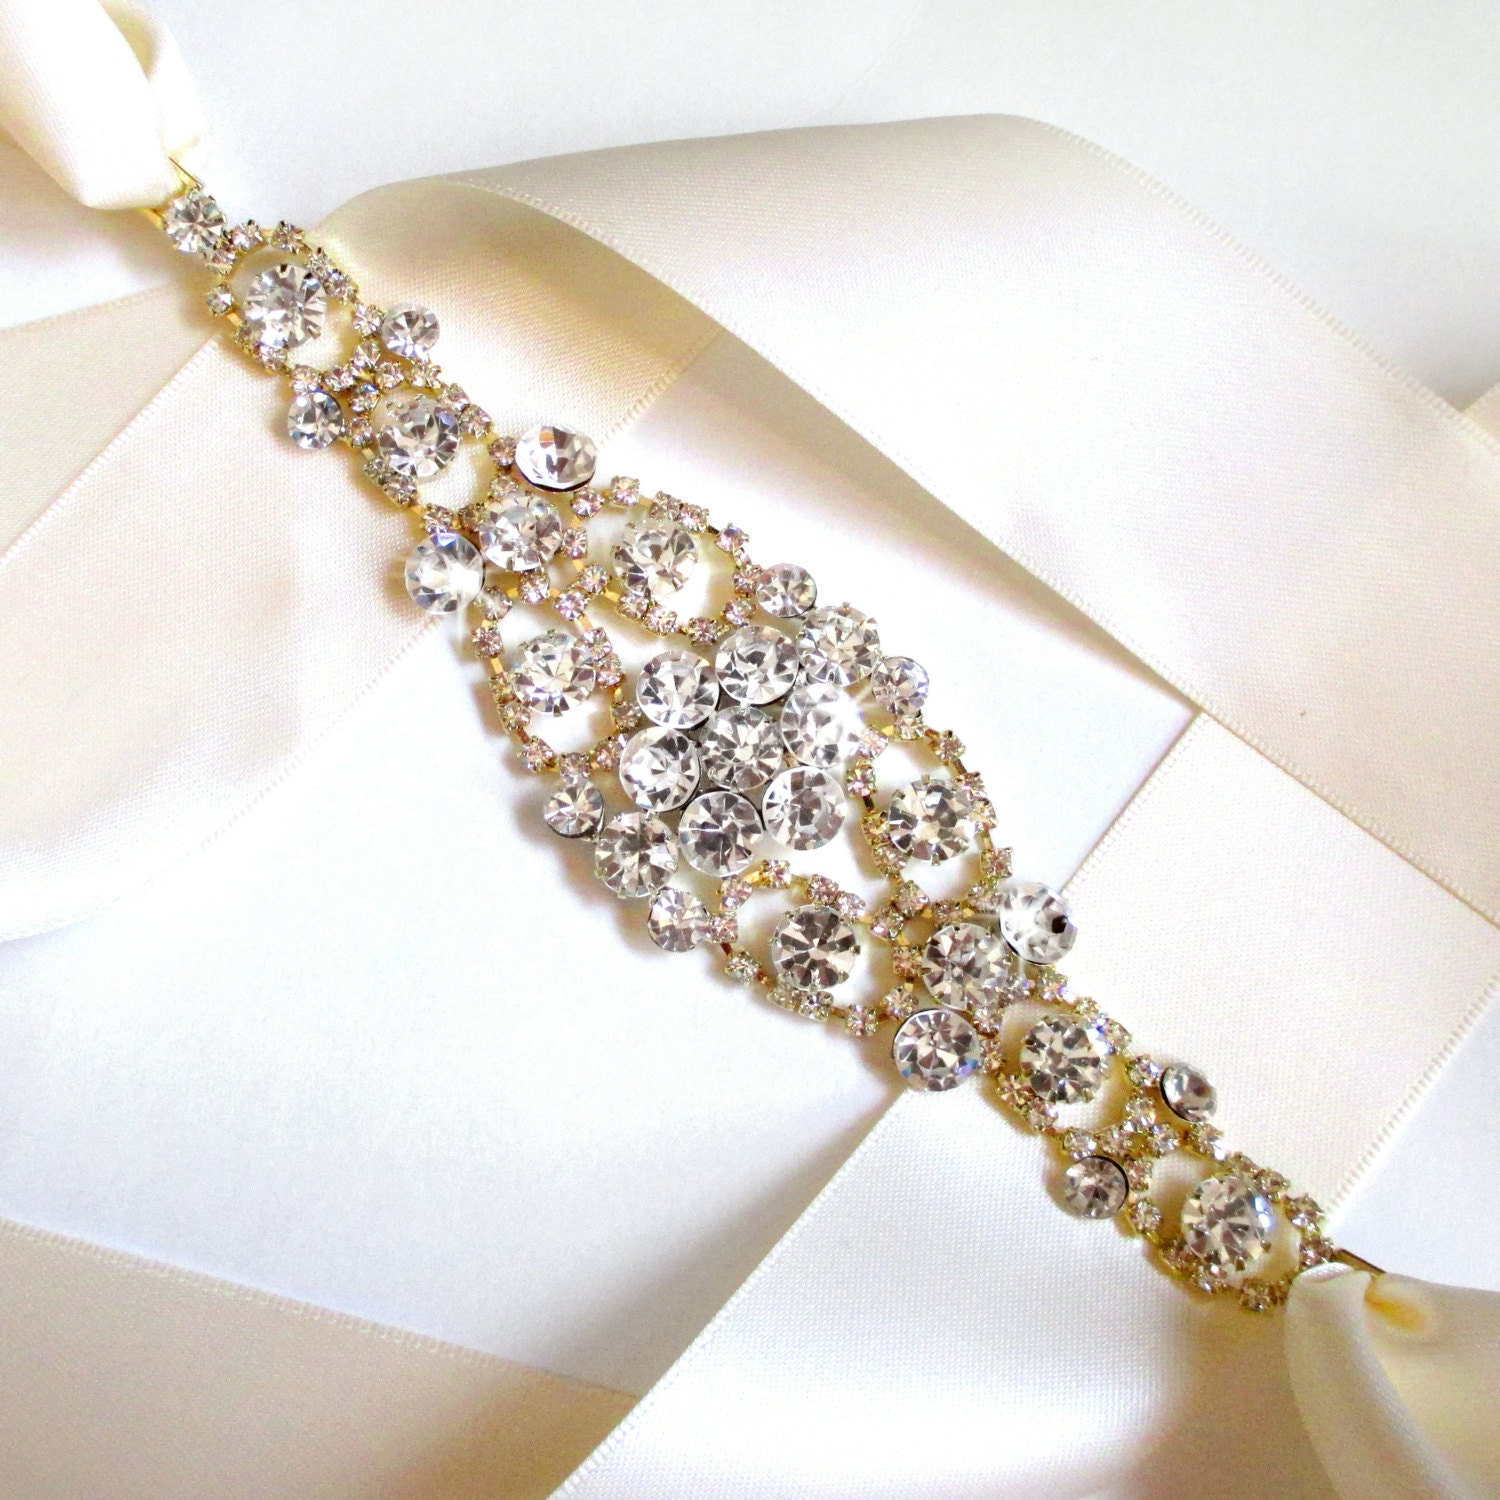 Gold wedding dress sash rhinestone encrusted bridal belt sash for Wedding dress belt sash